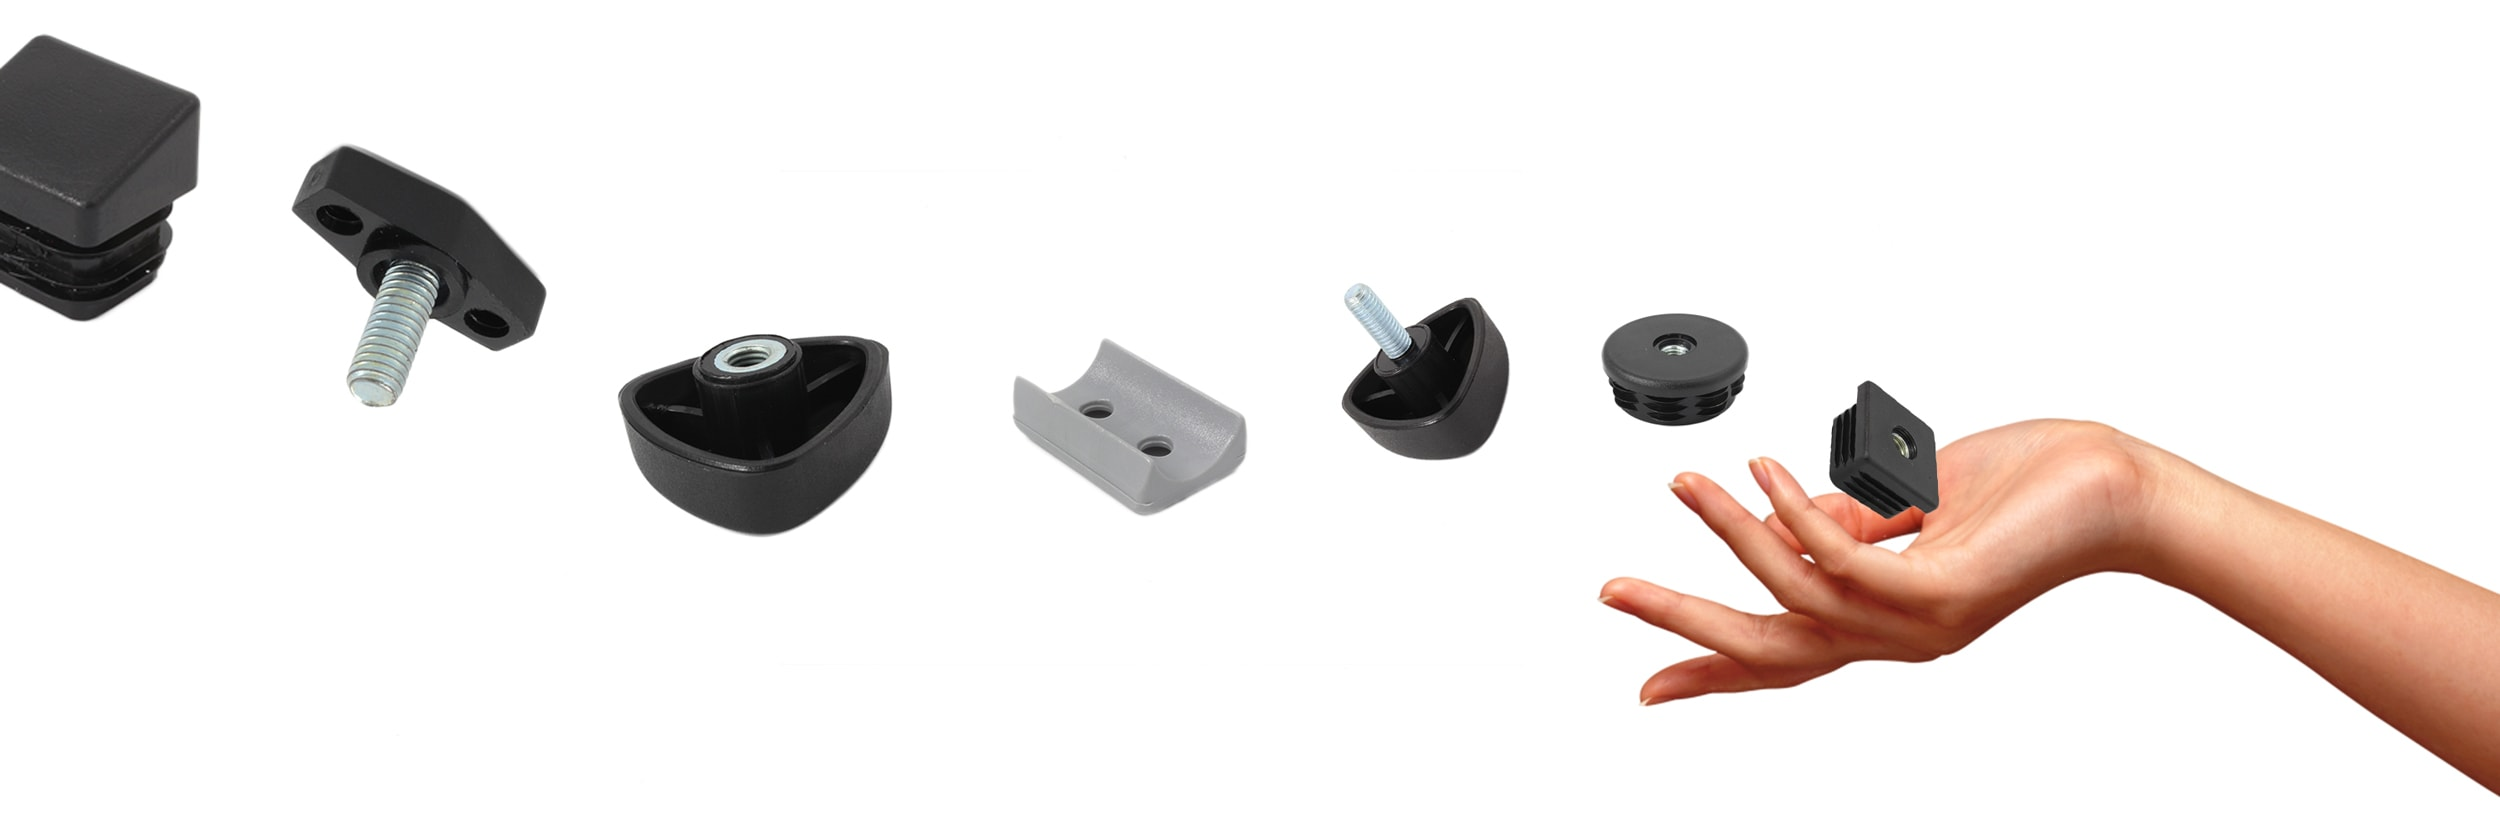 Coupling and saddle spacers